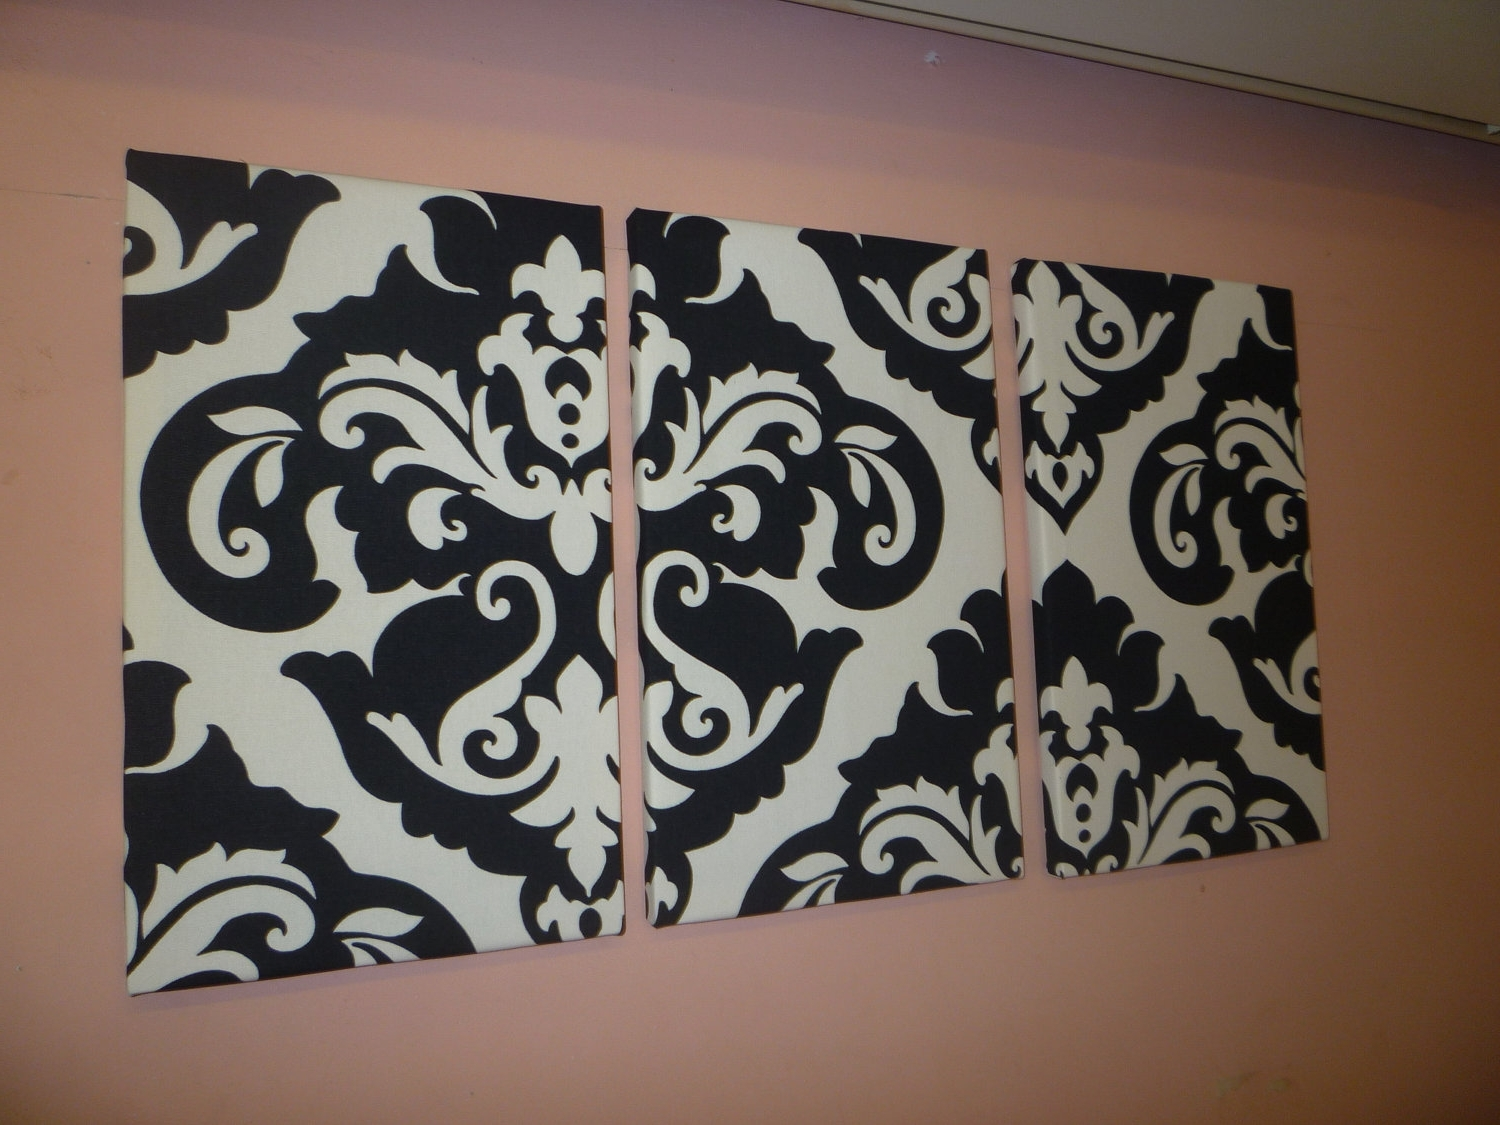 Fabric Painting Wall Art Inside Most Popular Black White Damask Fabric Wall Art Funky Retro Wickedwalls – Dma (View 3 of 15)